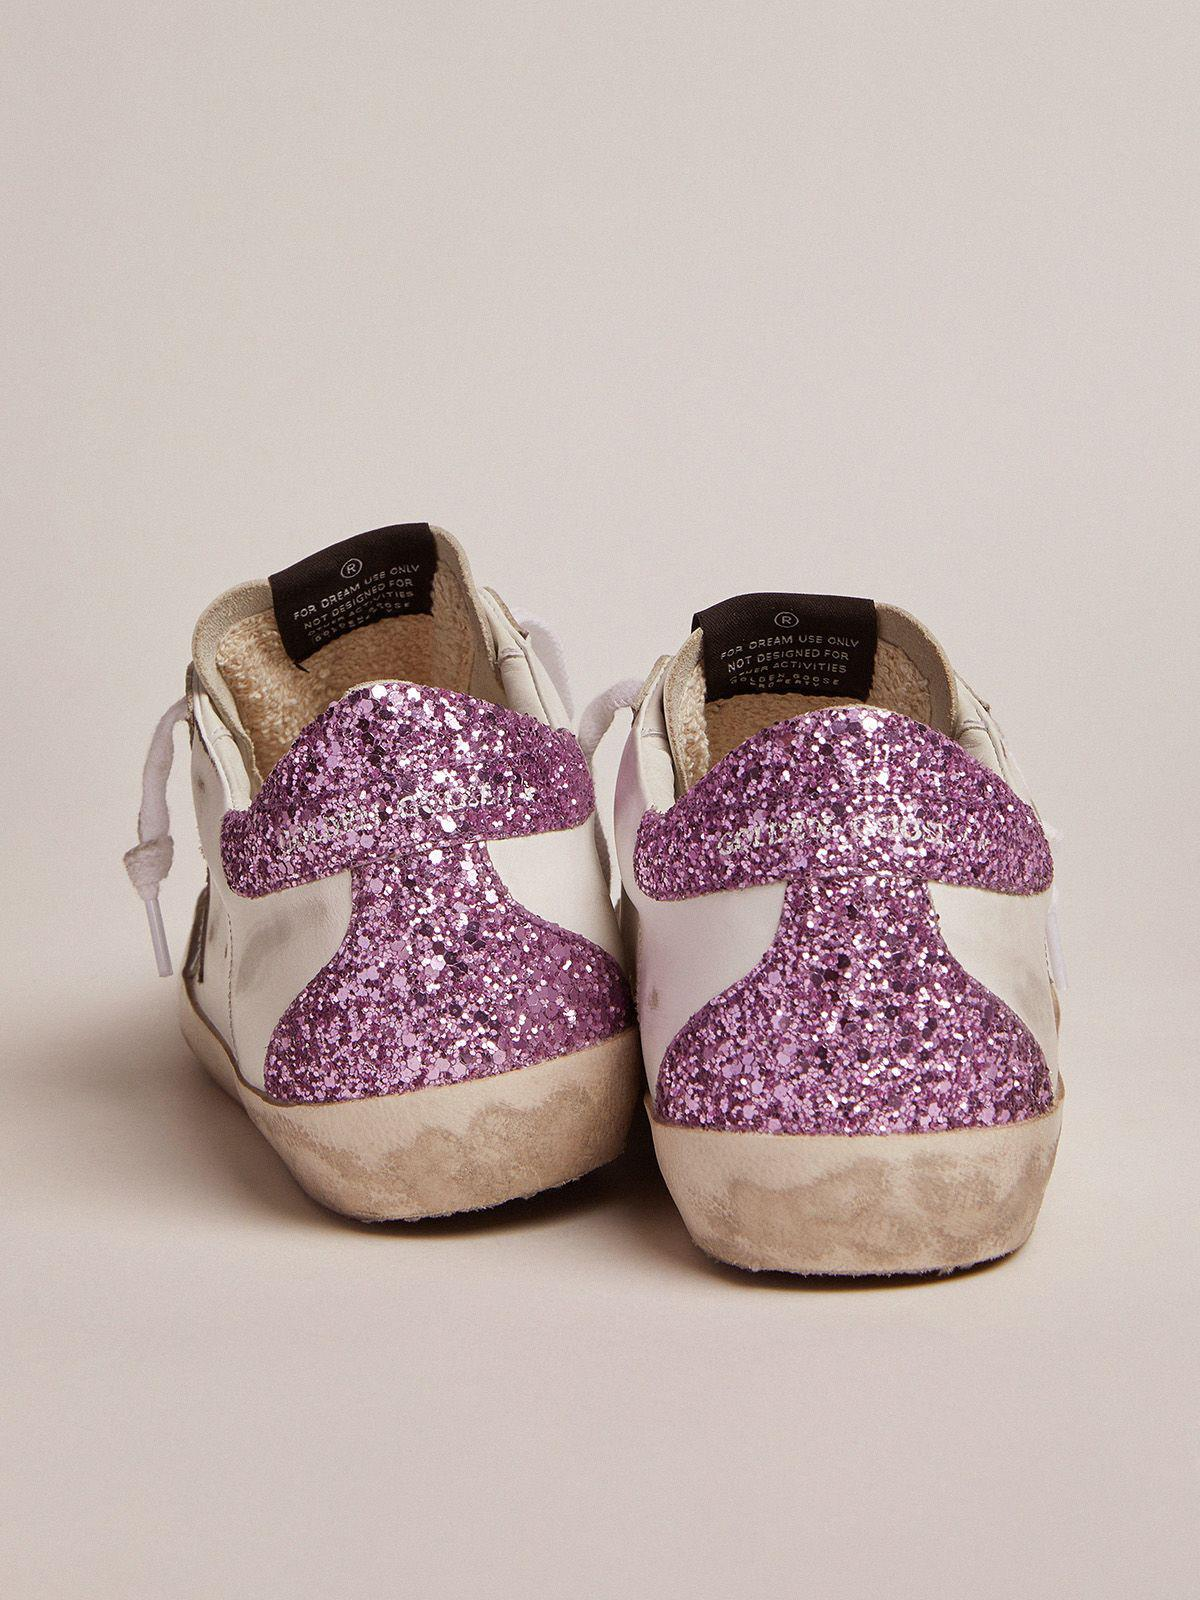 Super-Star sneakers with lavender glitter heel tab and light-blue metallic leather star 3